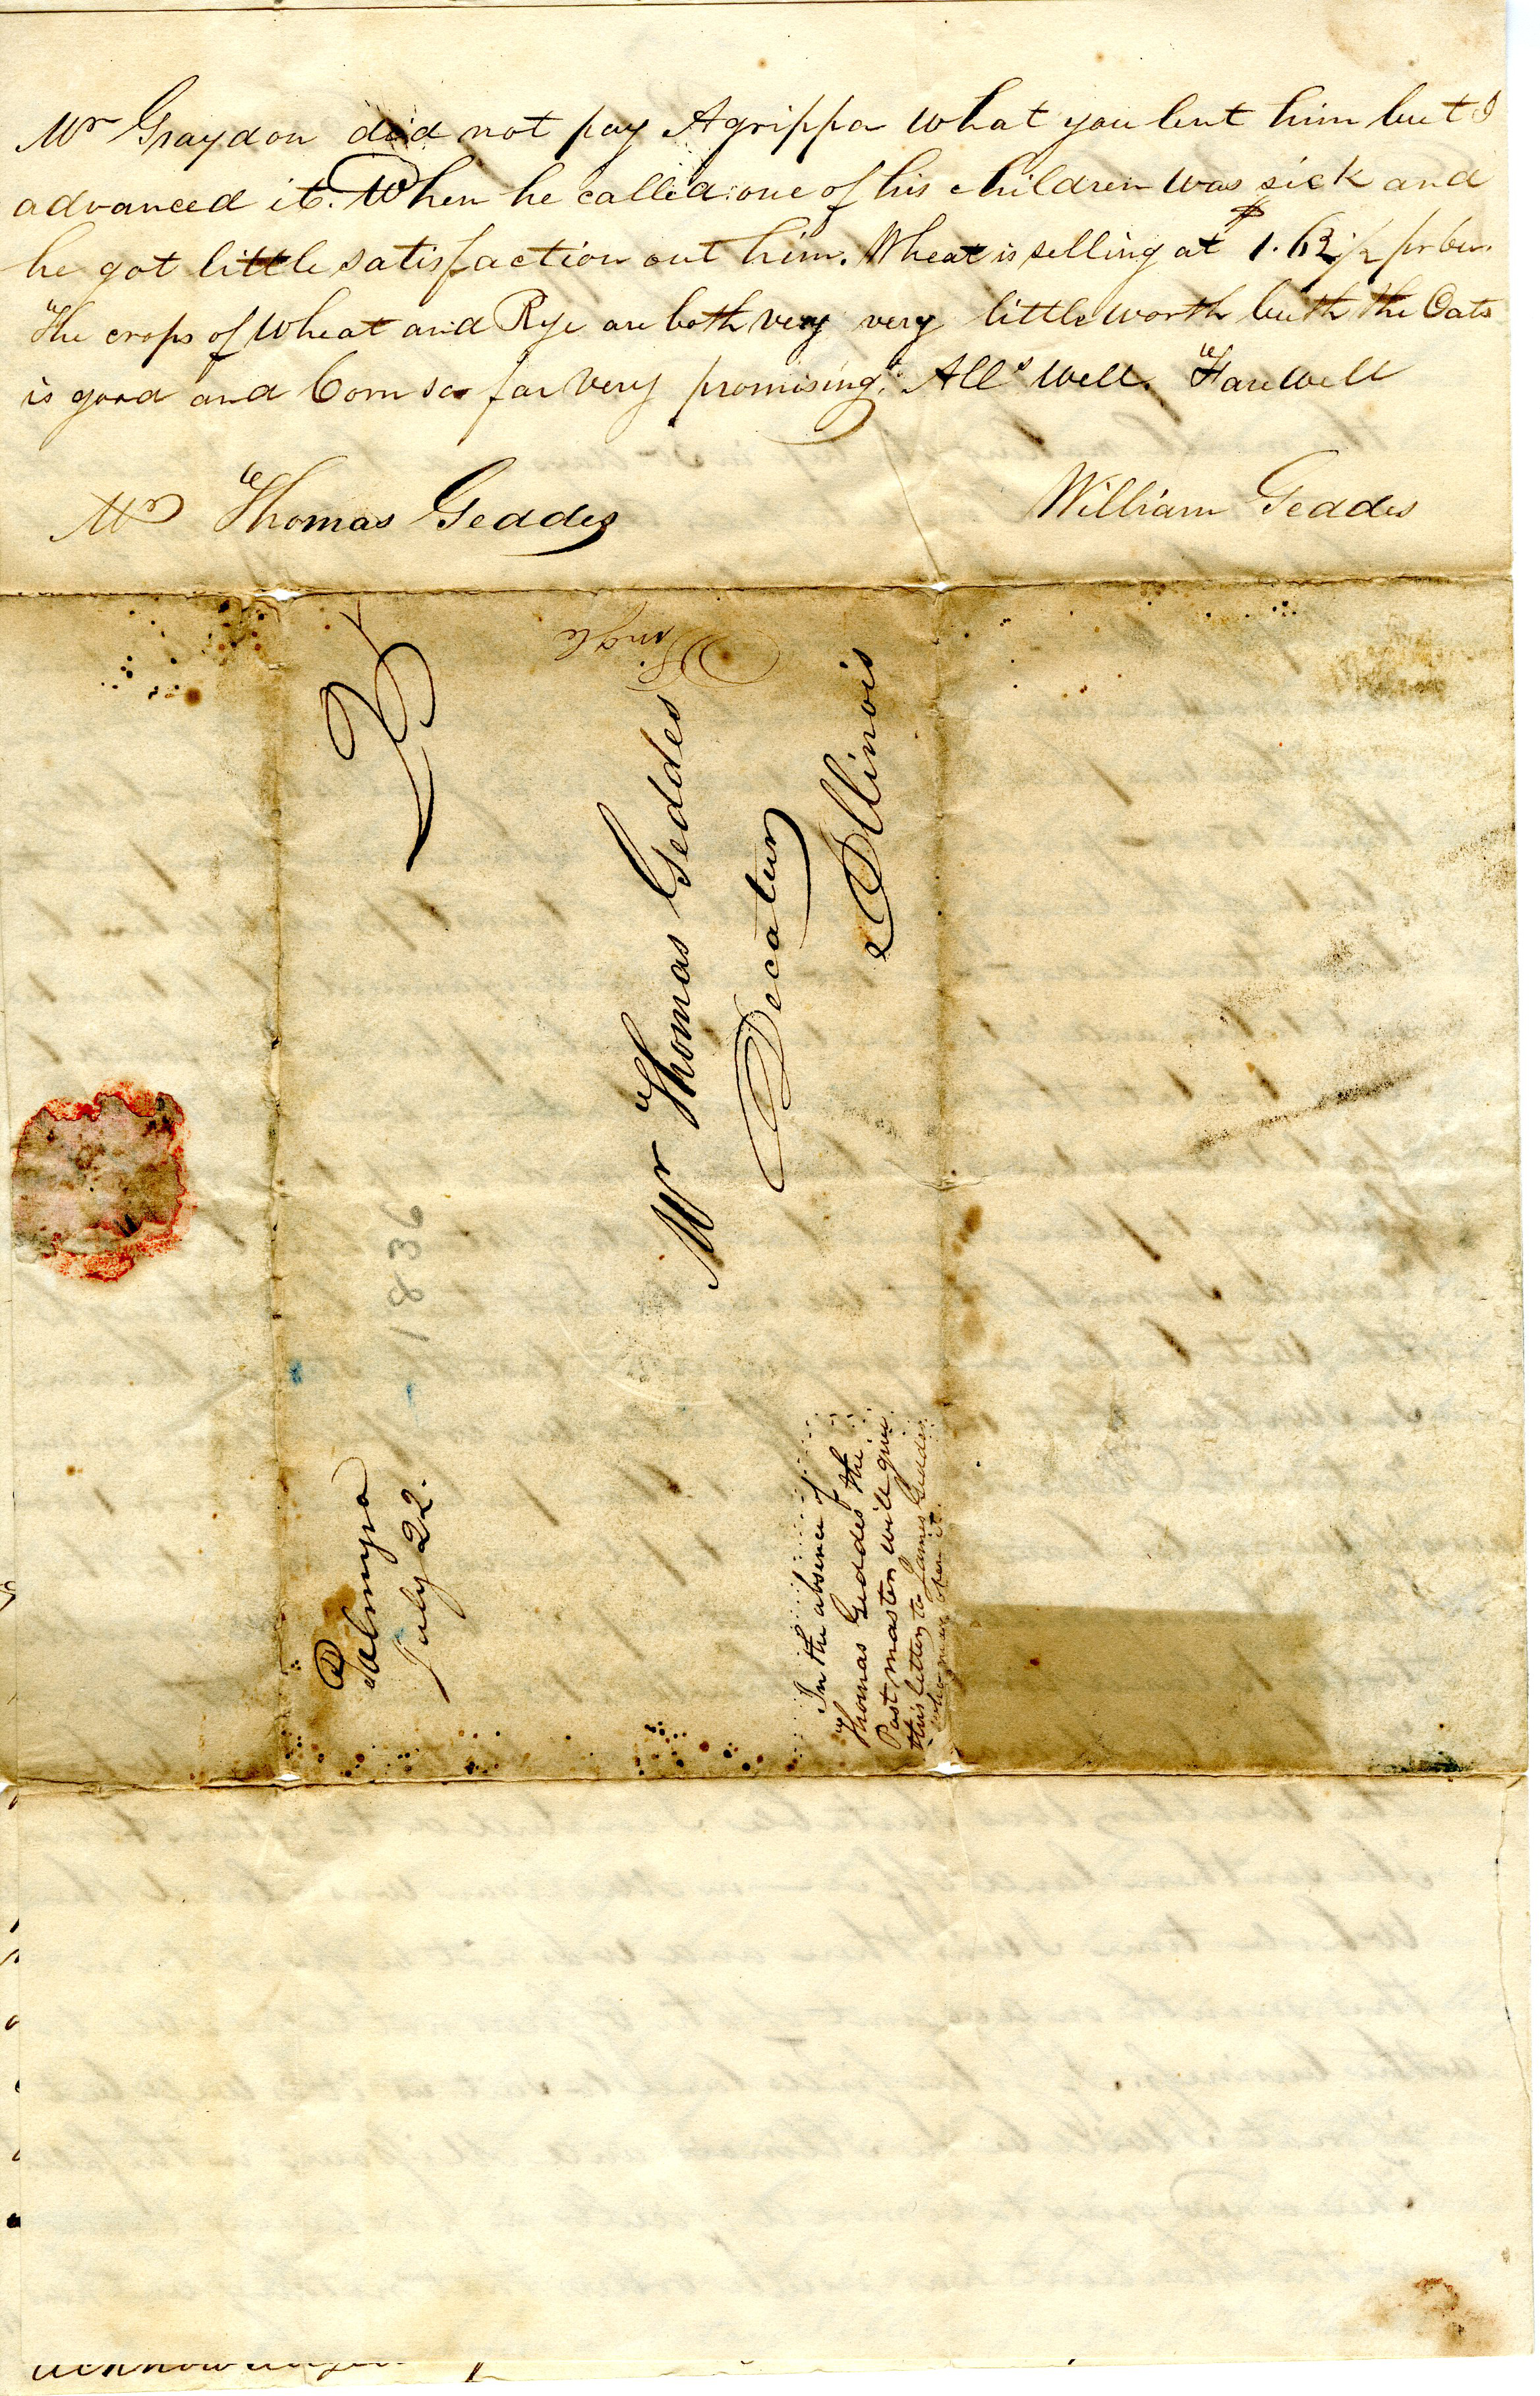 Letter From William Geddes to Thomas Geddes, July 22, 1836 image